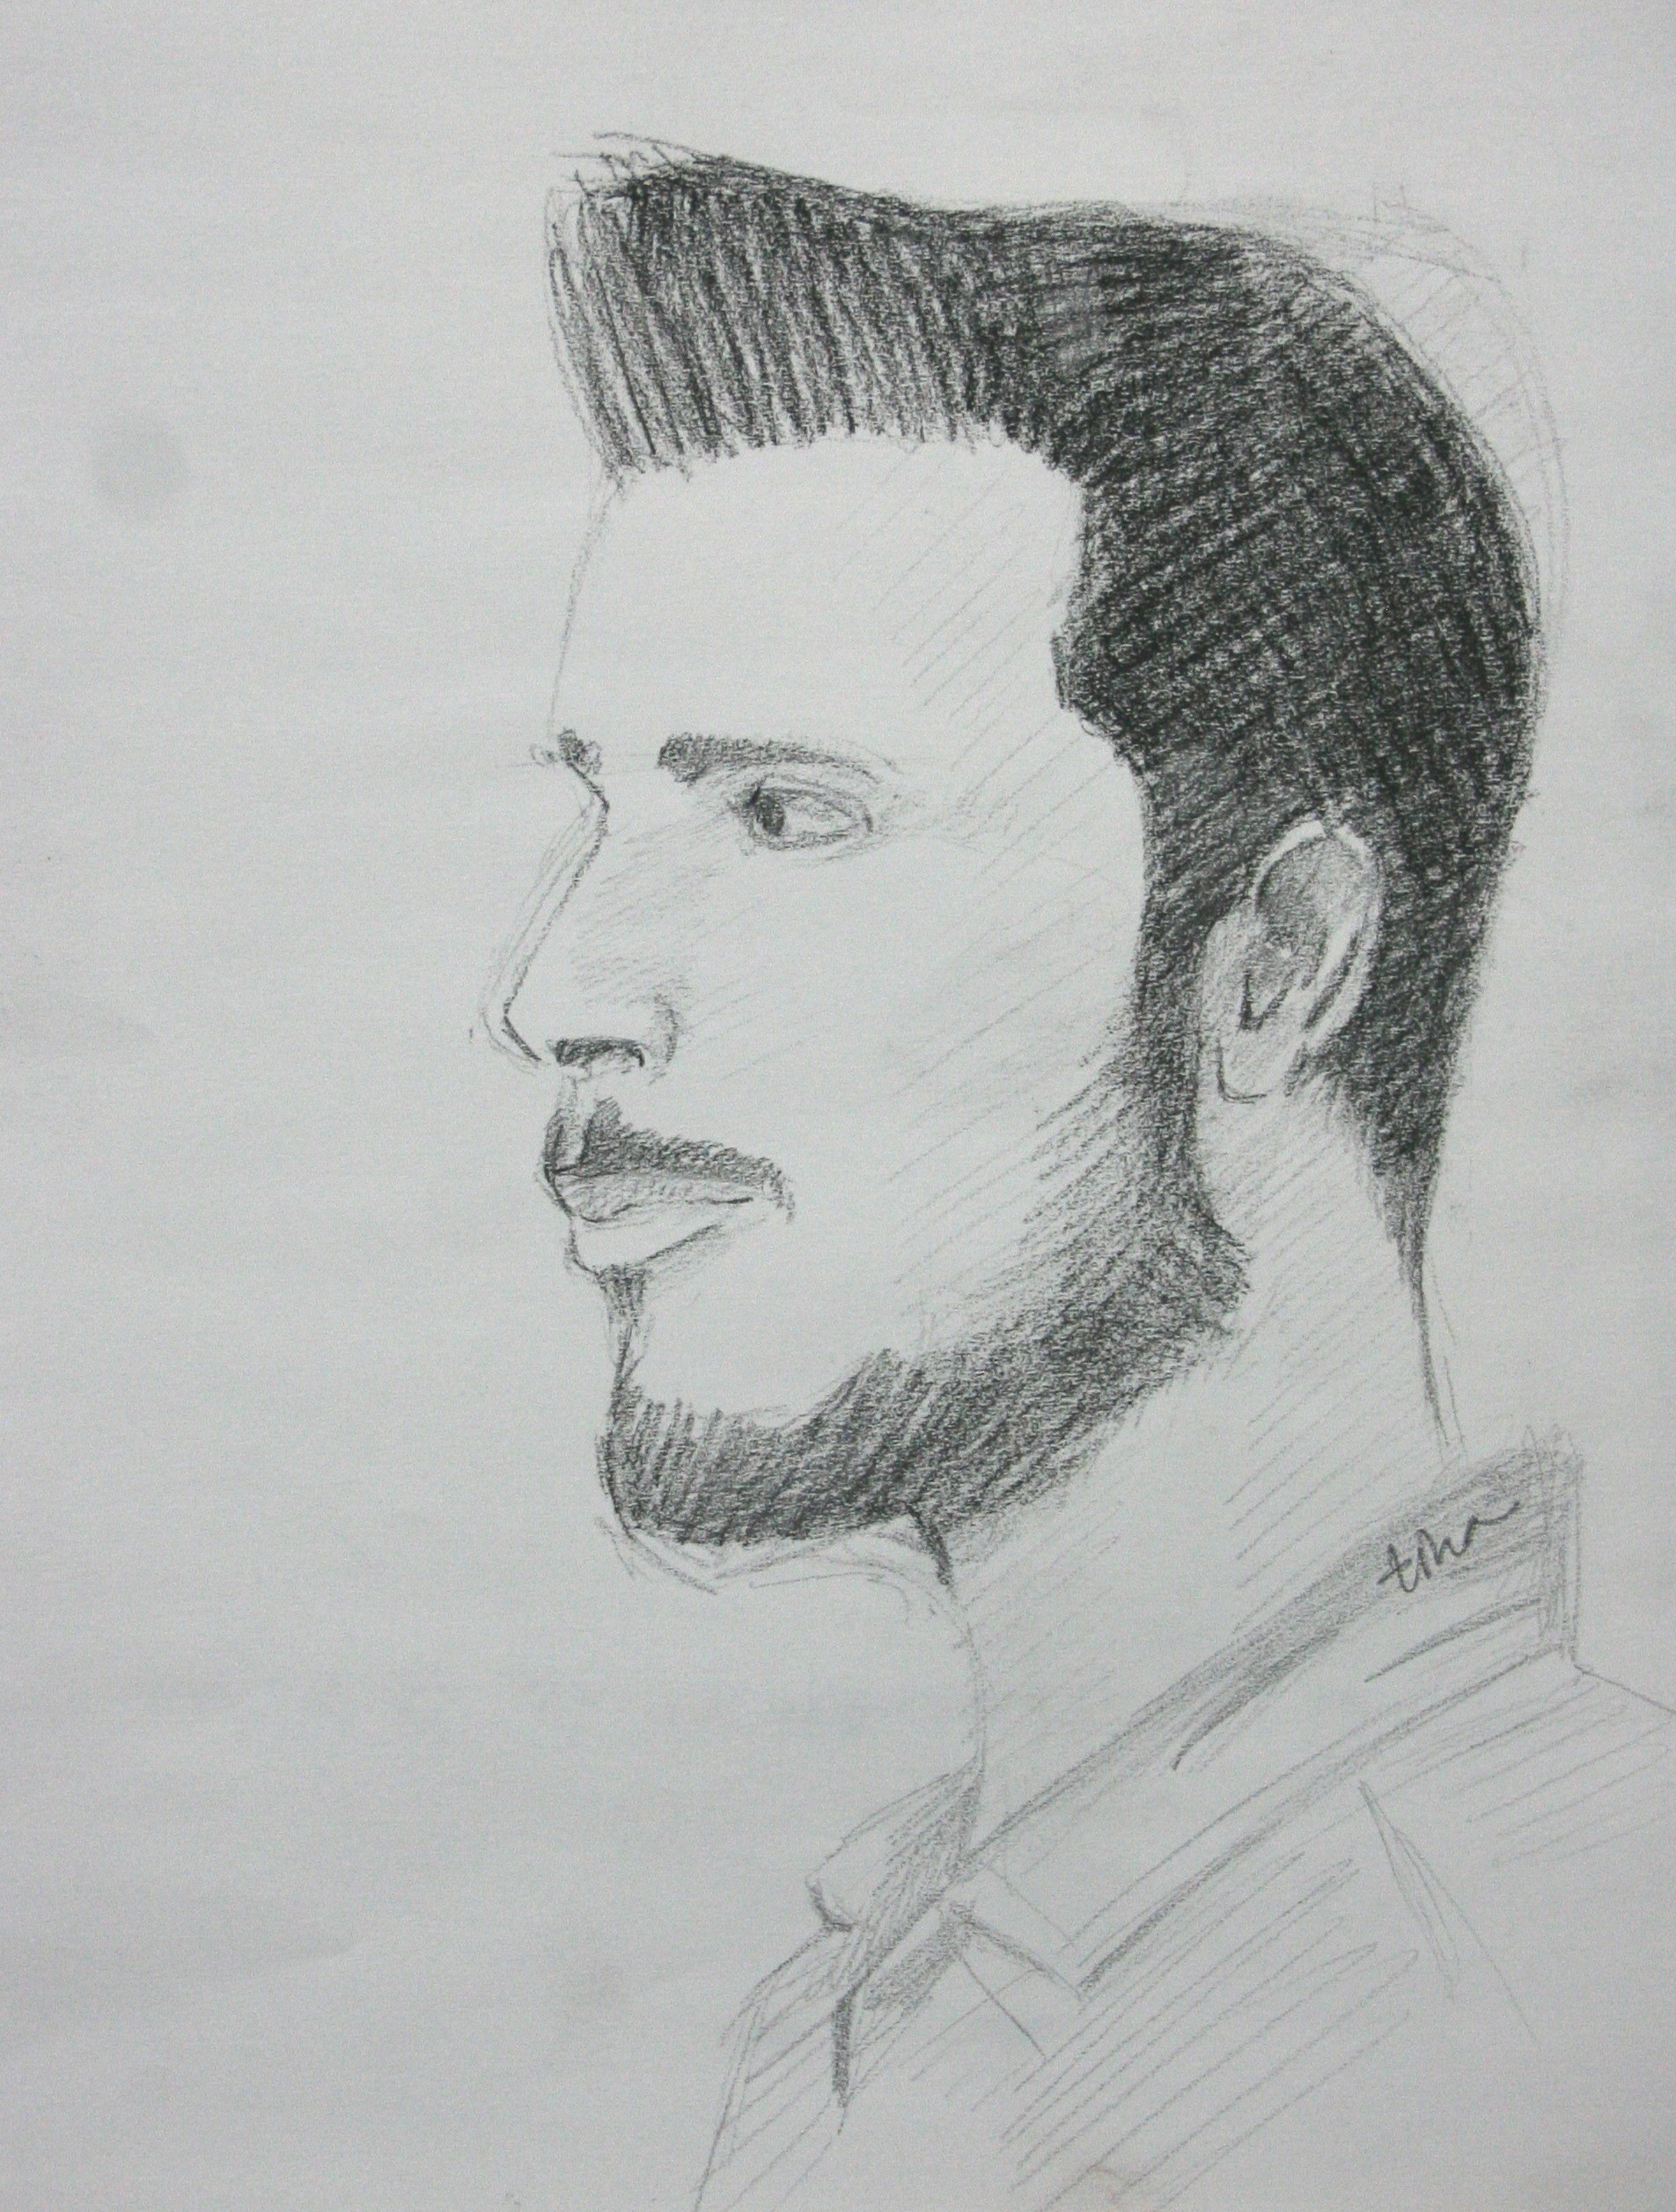 Christine Noetzel did this hour drawing of Miguel Ocasio.